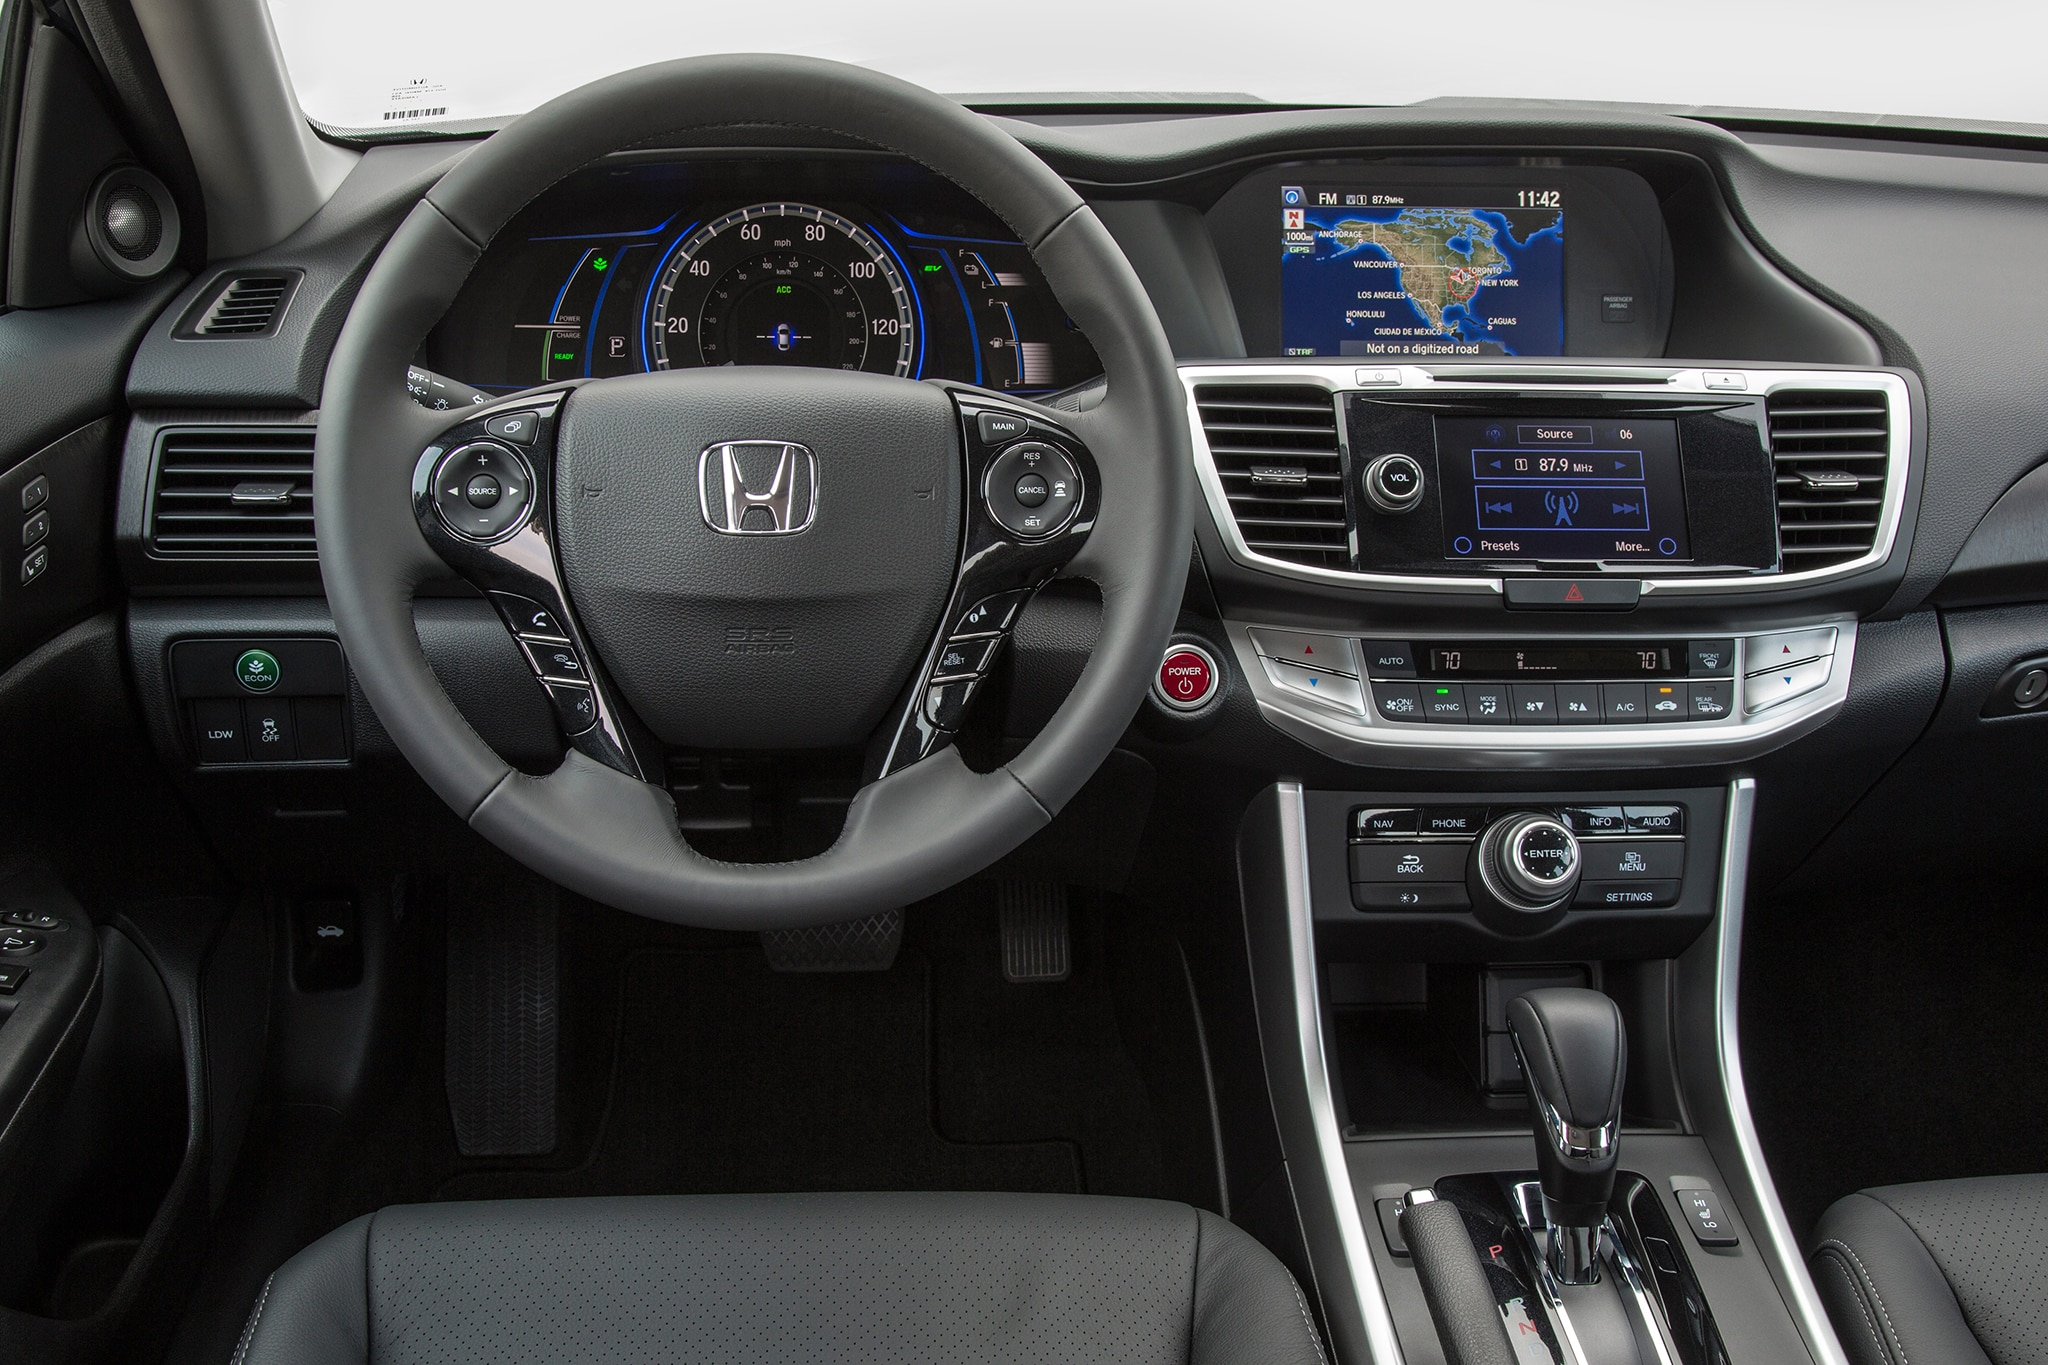 on the is com flash reviewers touring accord honda drive inside comfortable spacious handsome hybrid autoreviewers auto and outside